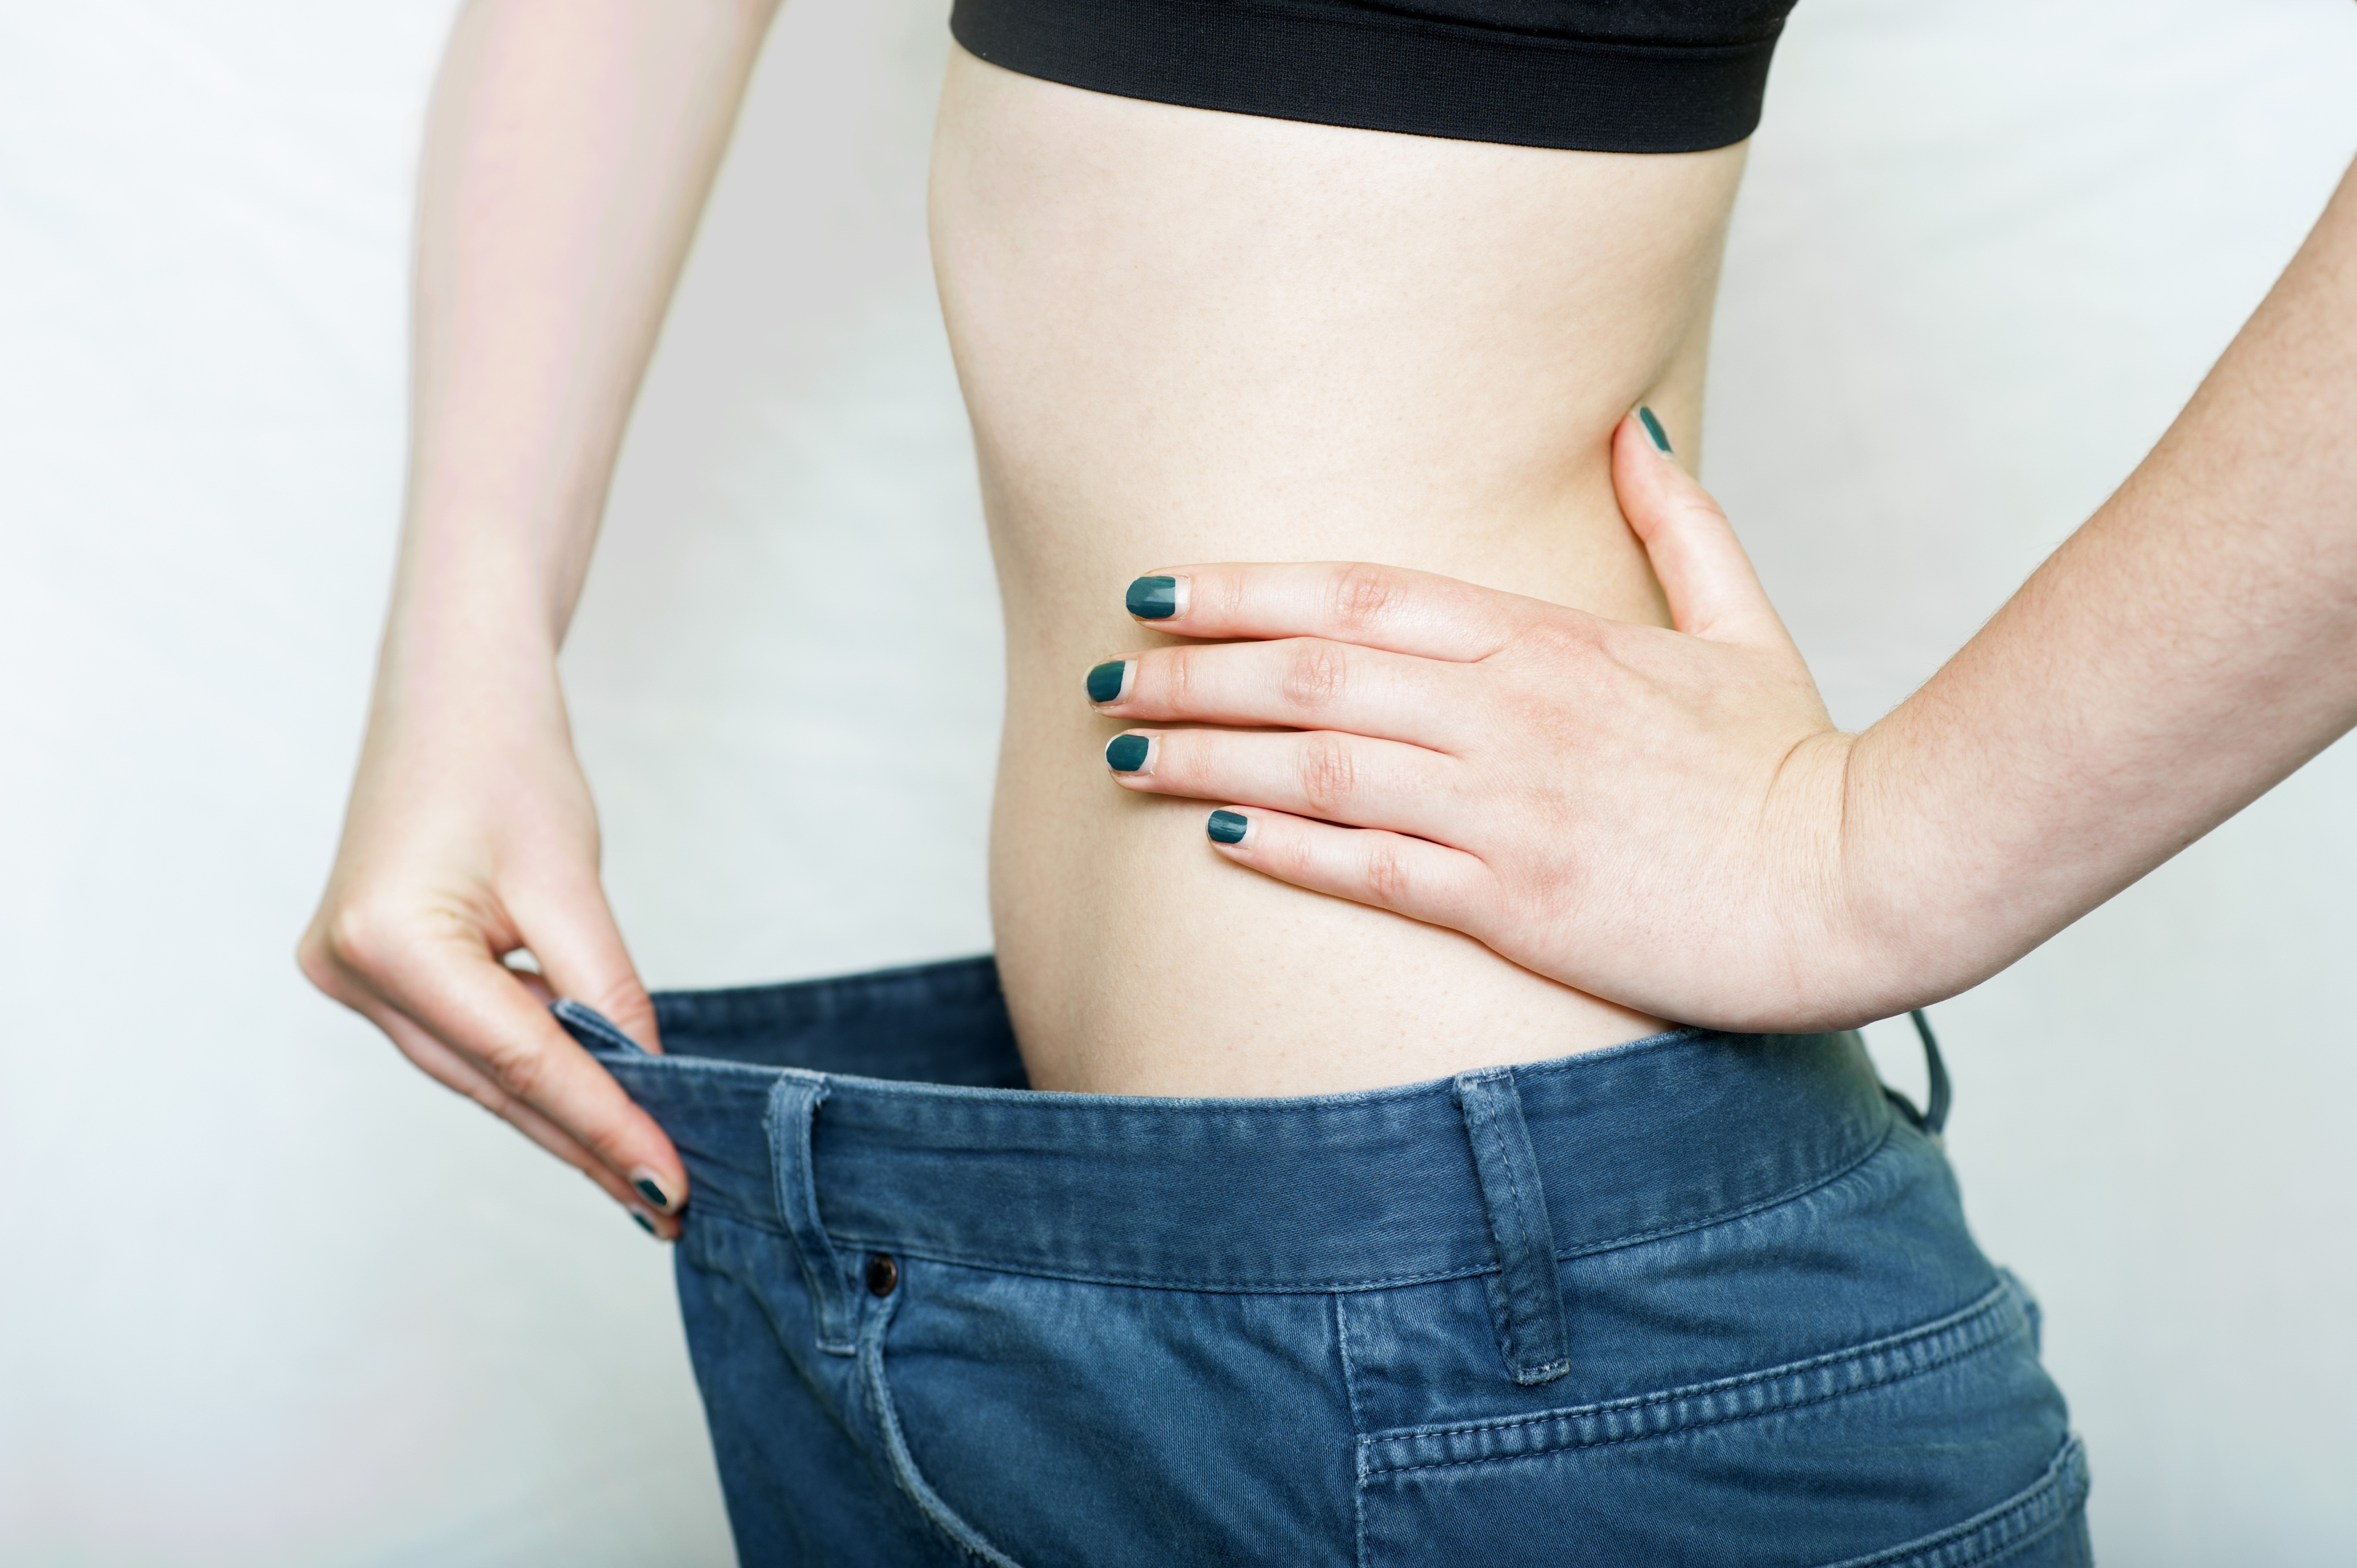 lose weight by cutting alcohol out of your diet